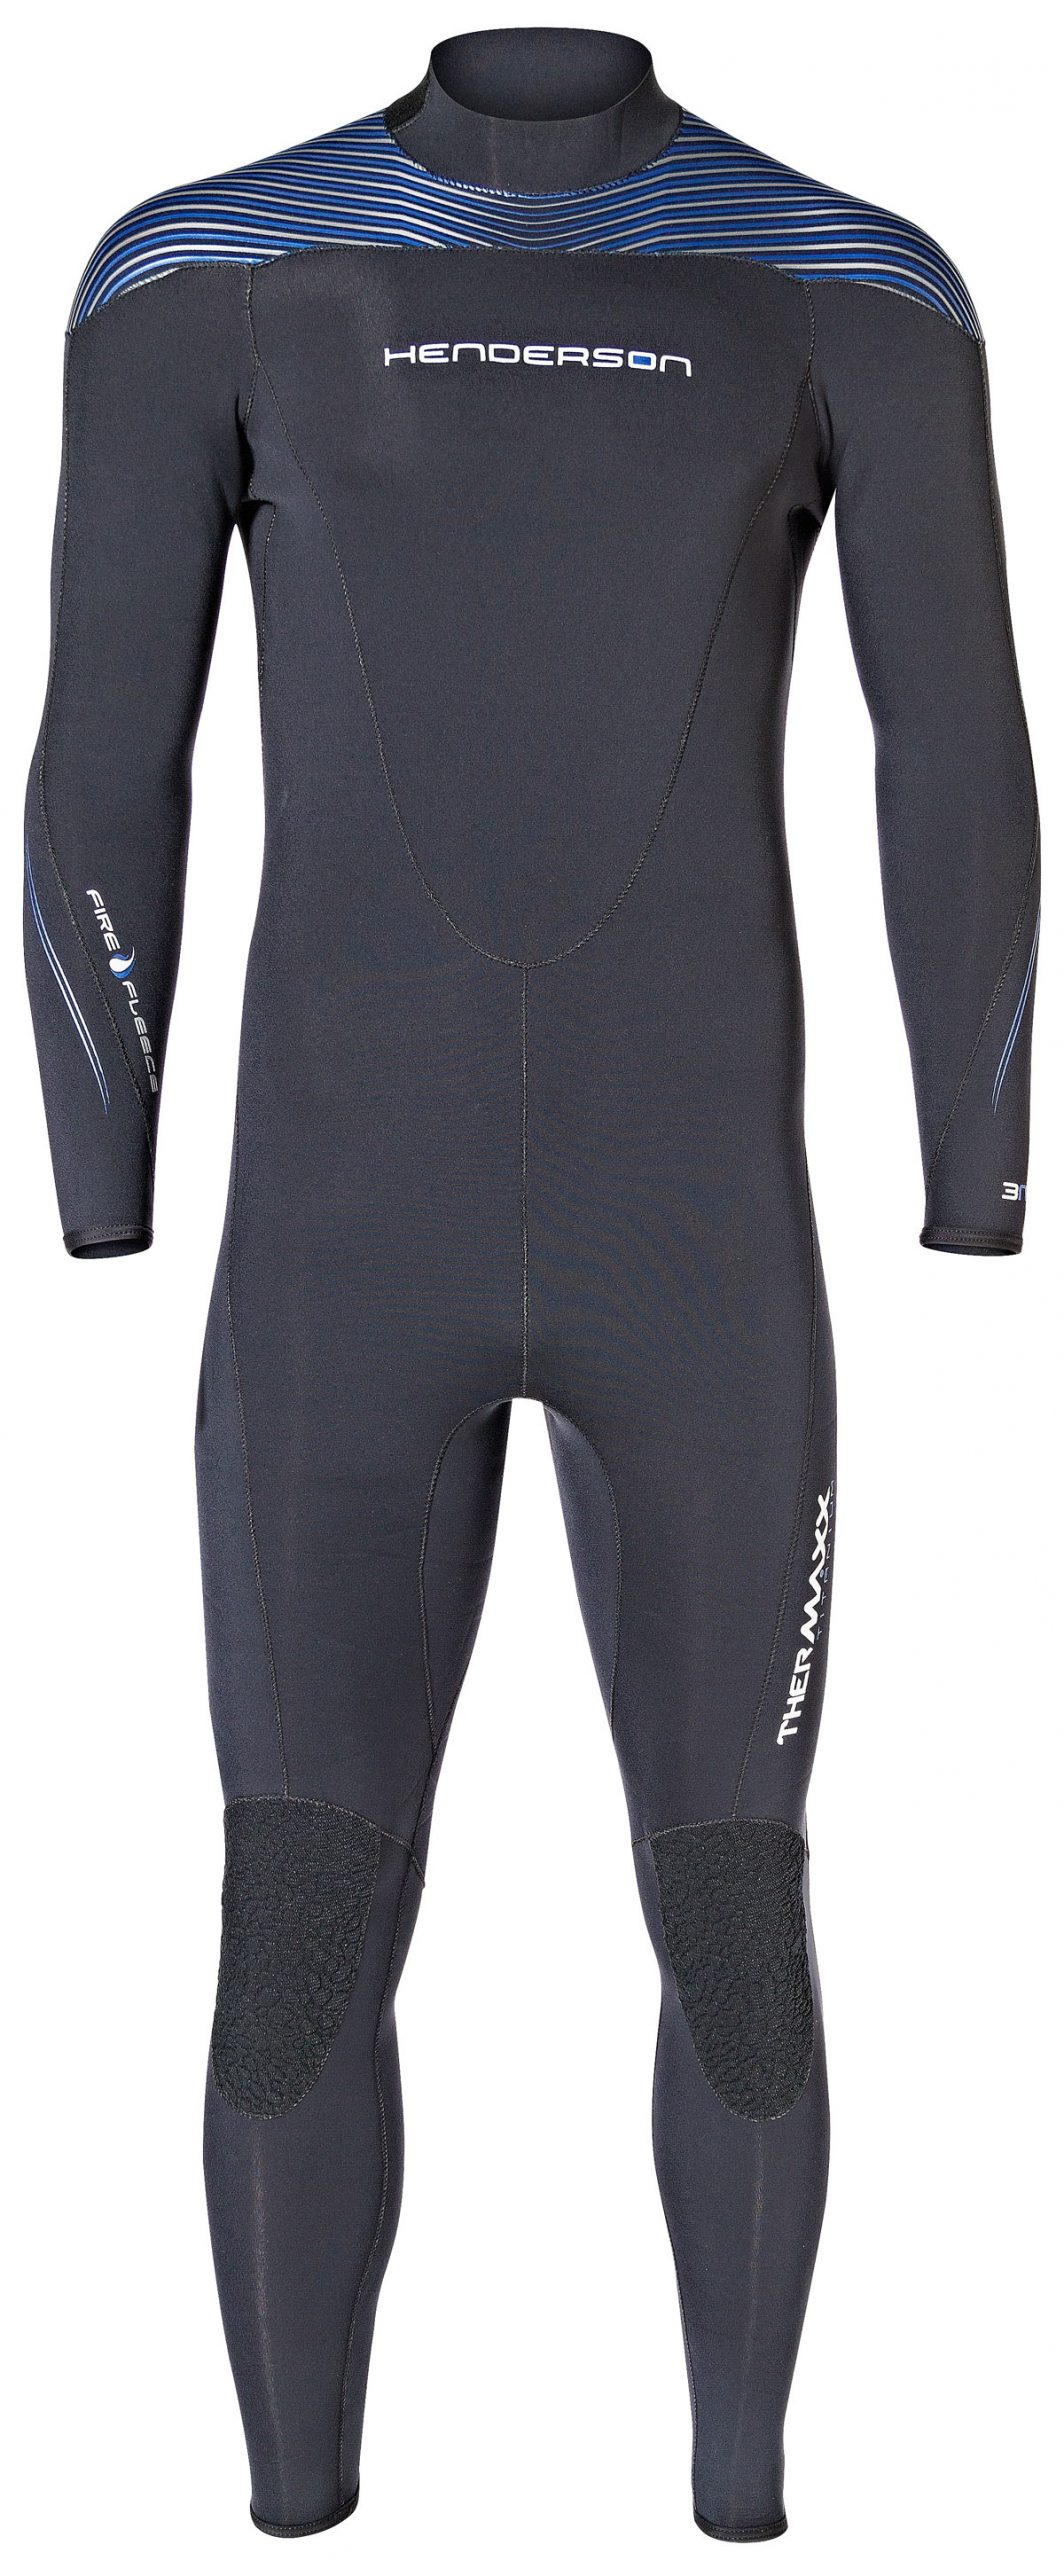 FOILING THERMOHOT IMPACT WETSUIT BLACK GREY  A2